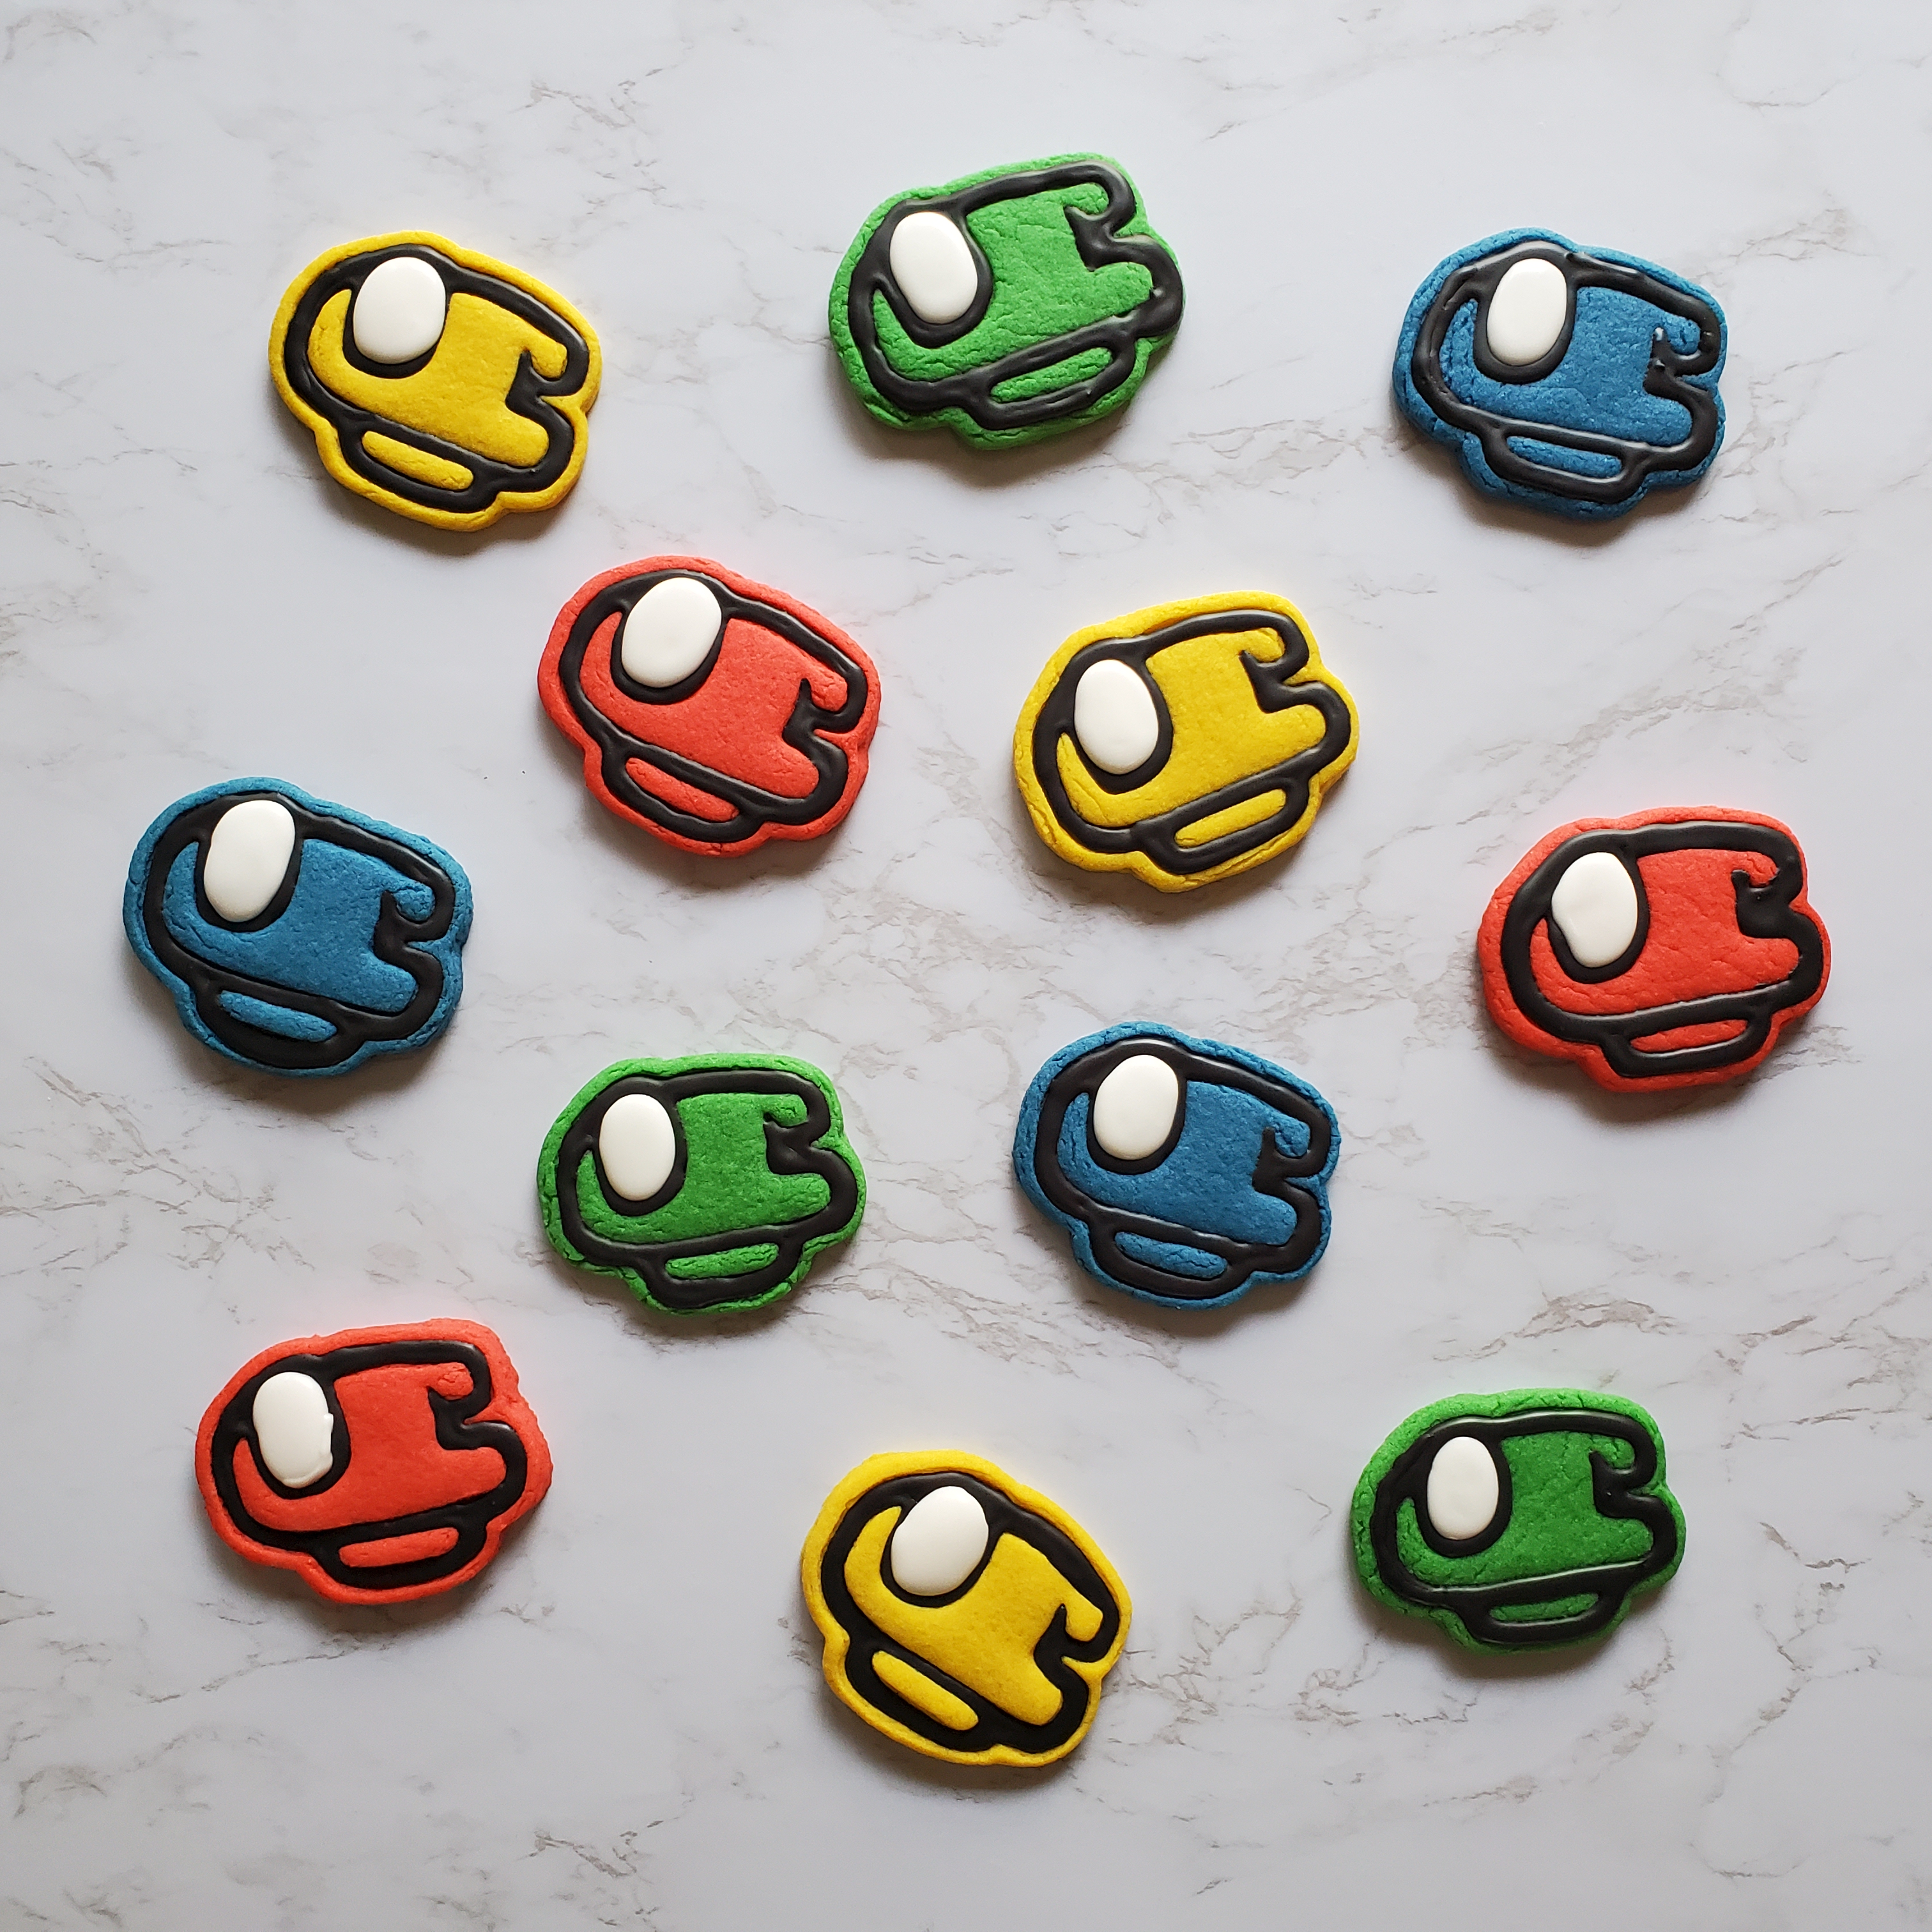 Among us cookies in the colors red, yellow, green and blue, laying on a marble countertop.